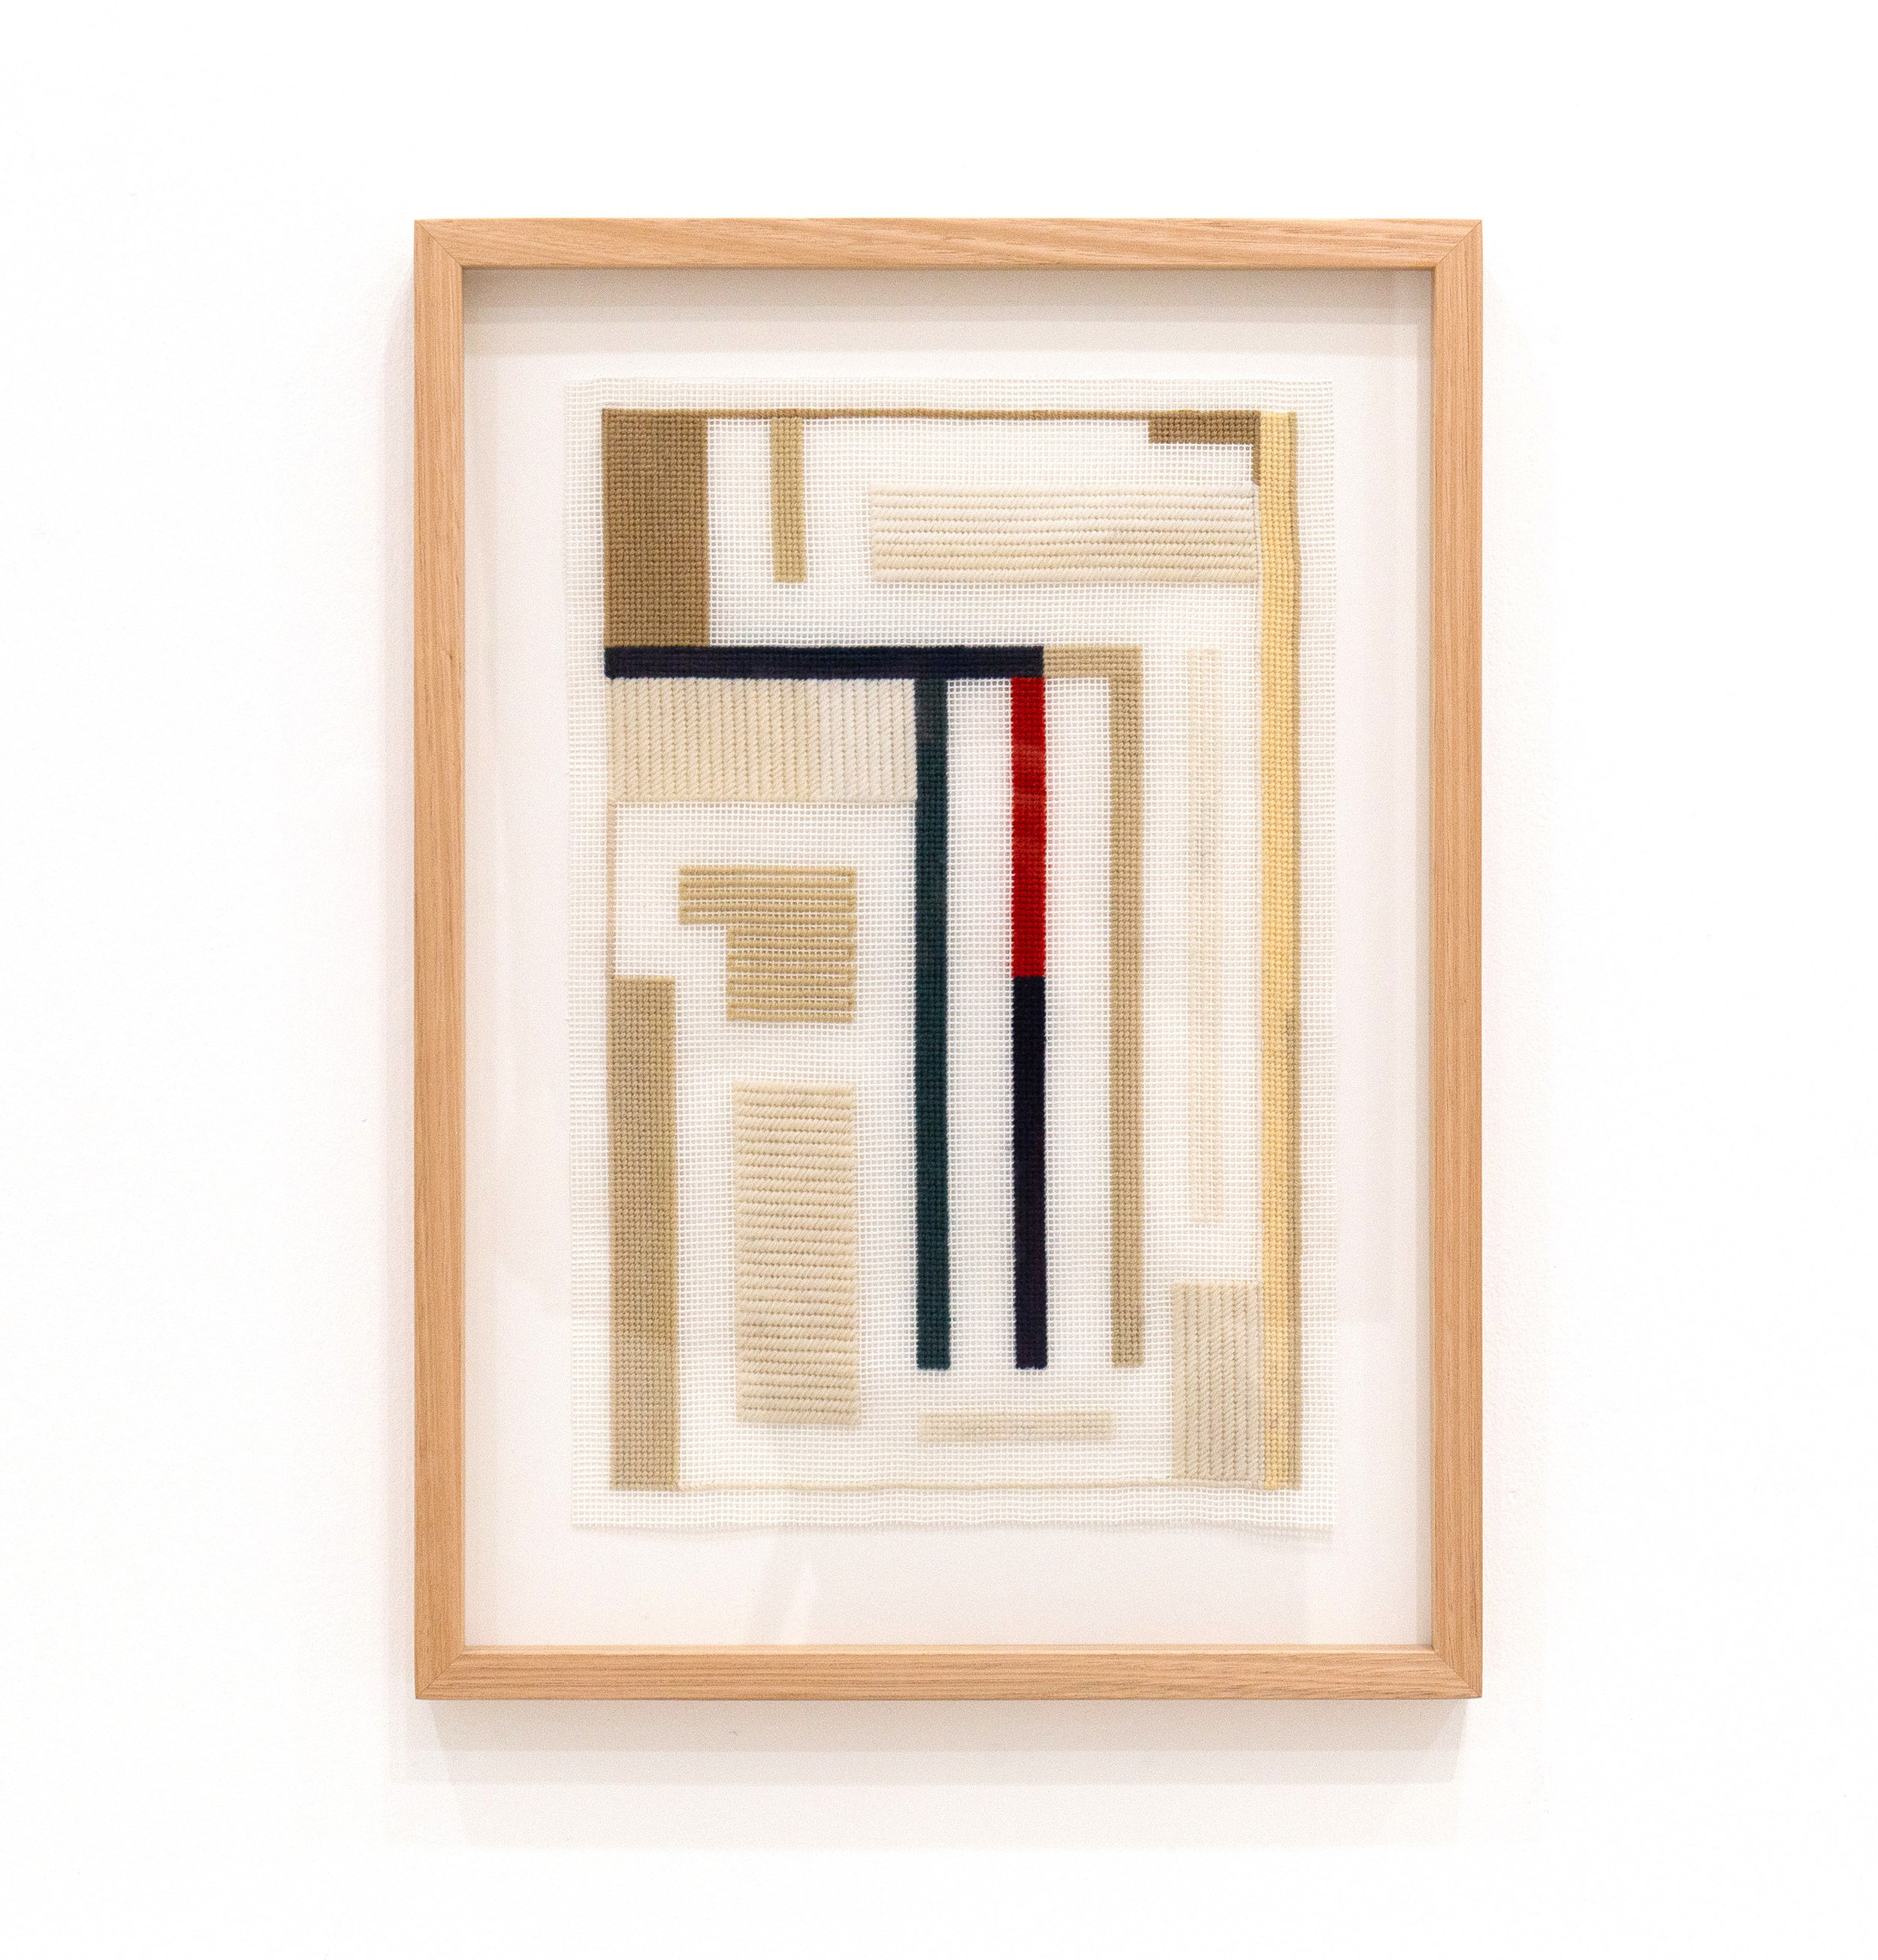 SARAH crowEST  Composition Version Excursion  wool on needlepoint canvas 37 × 24 cm Framed 50 × 36 cm